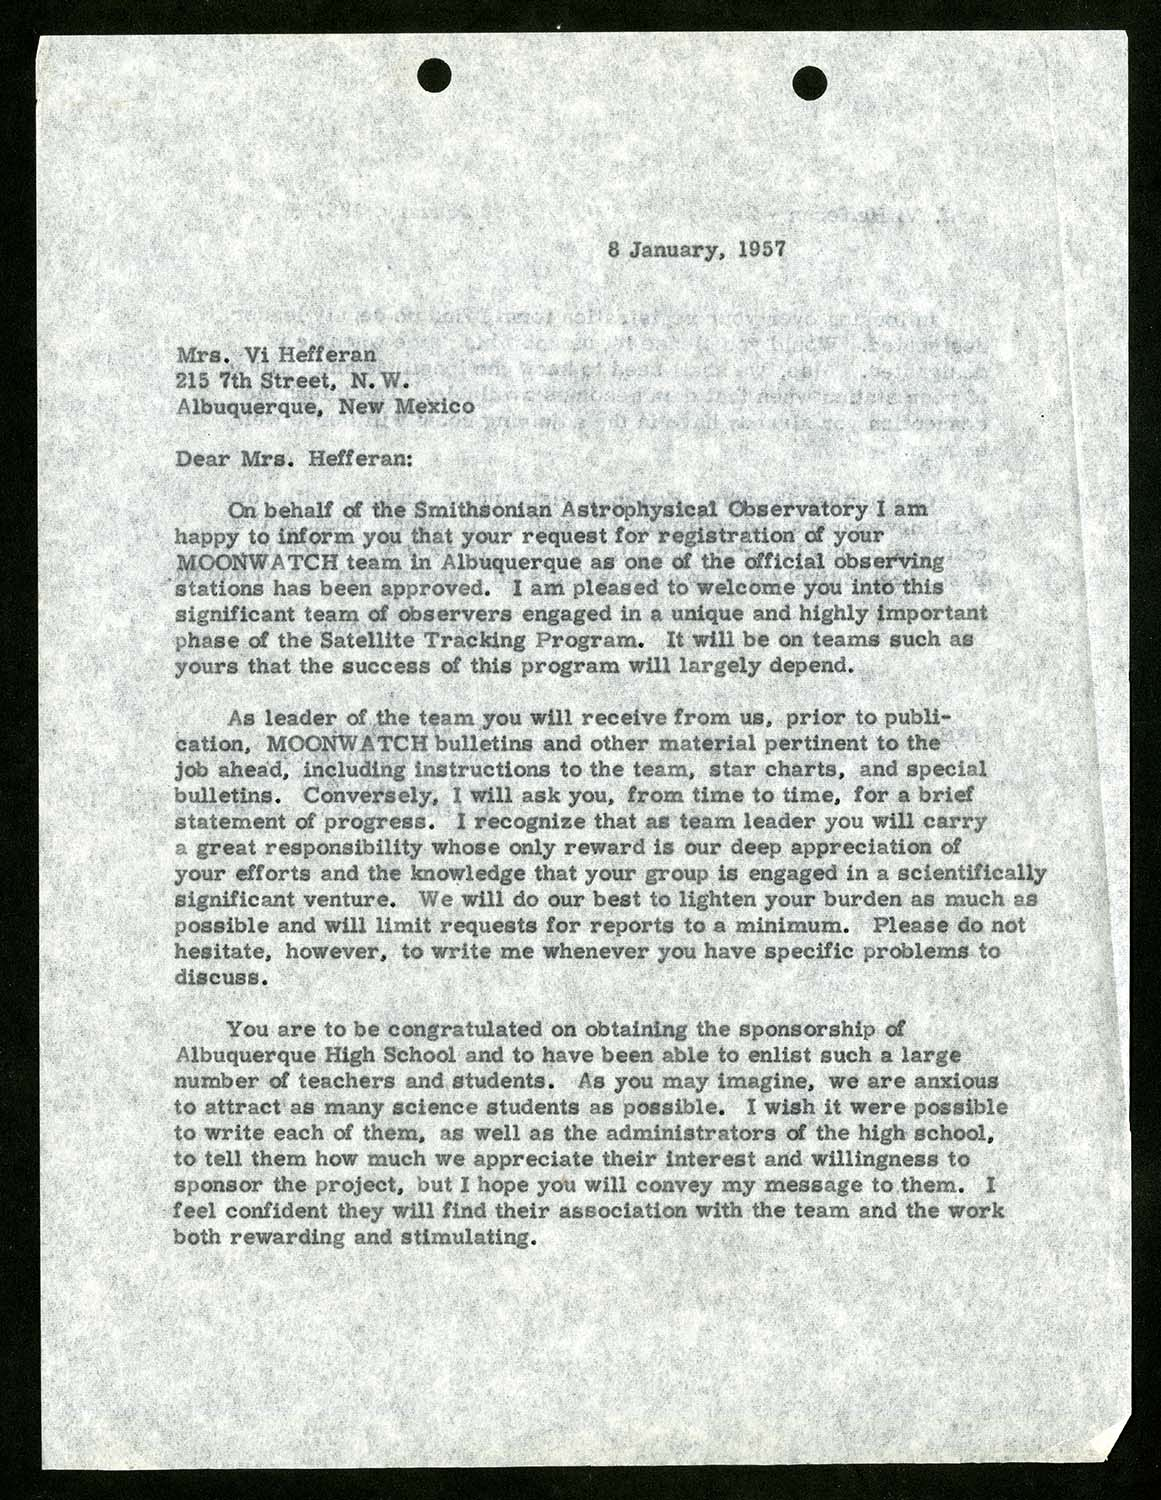 Typed letter, dated 6 January, 1957 and addressed to Mrs. Vi Hefferan.